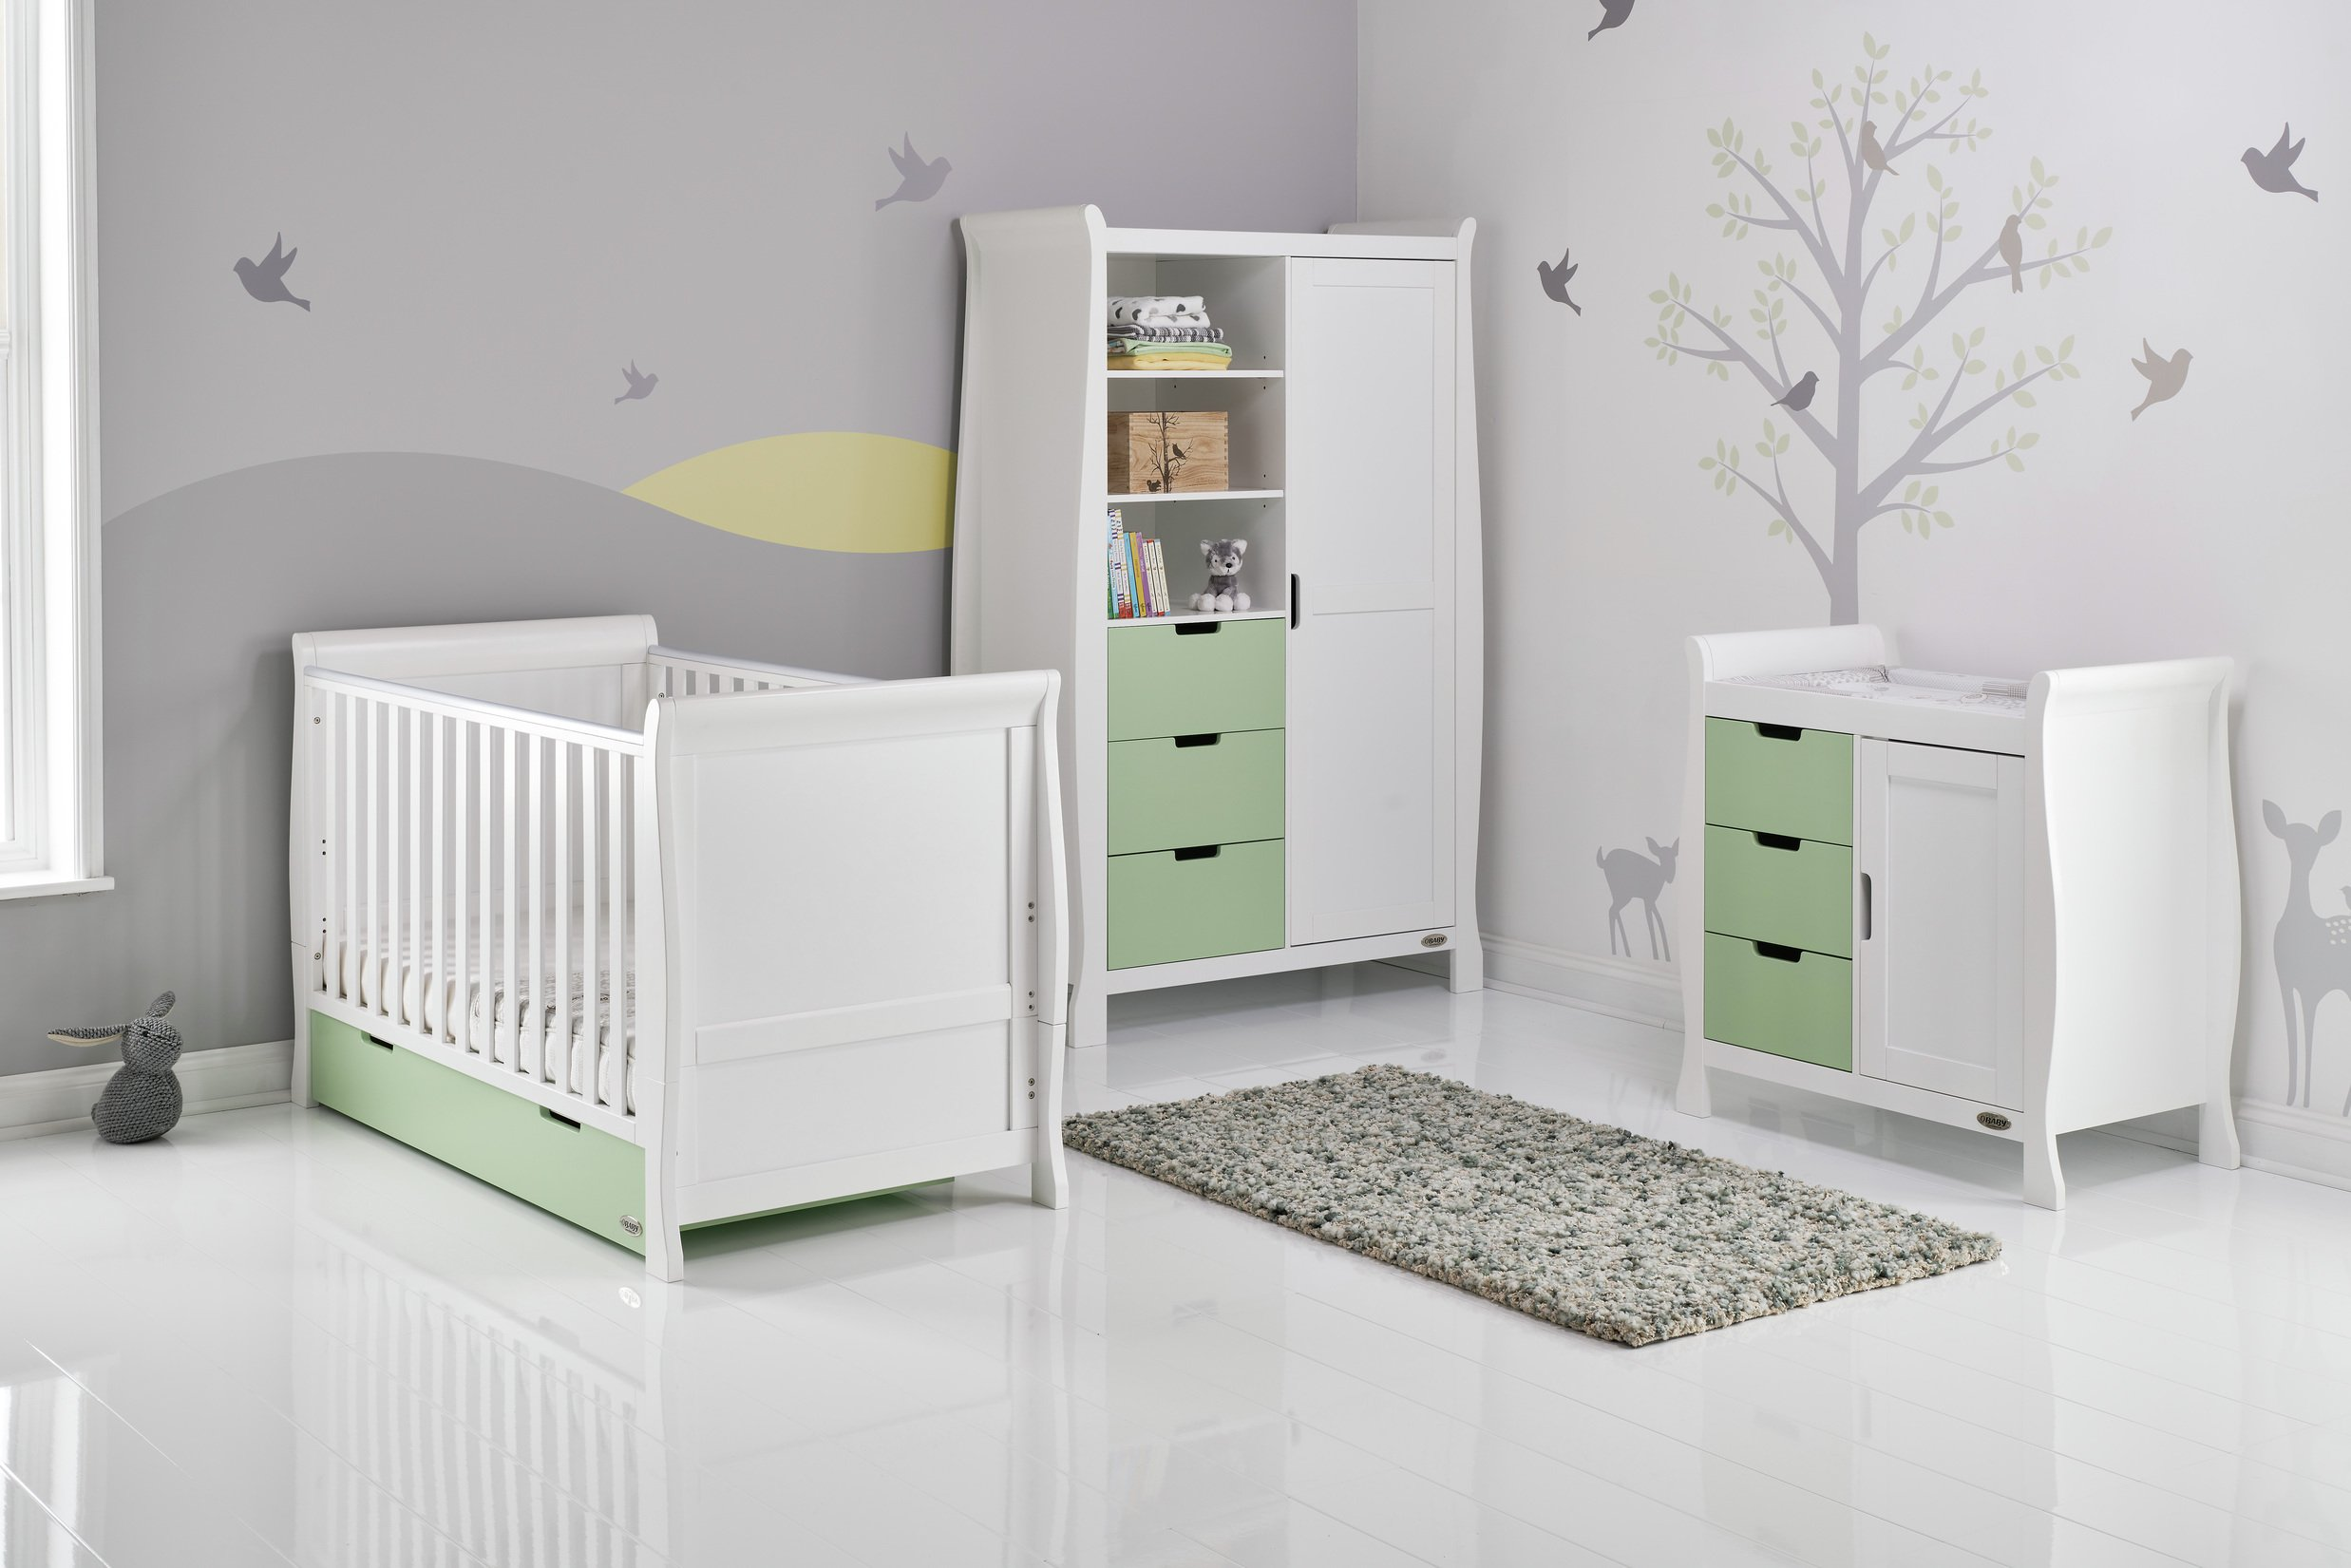 Obaby Stamford 3 Piece Room Set - White with Pistachio